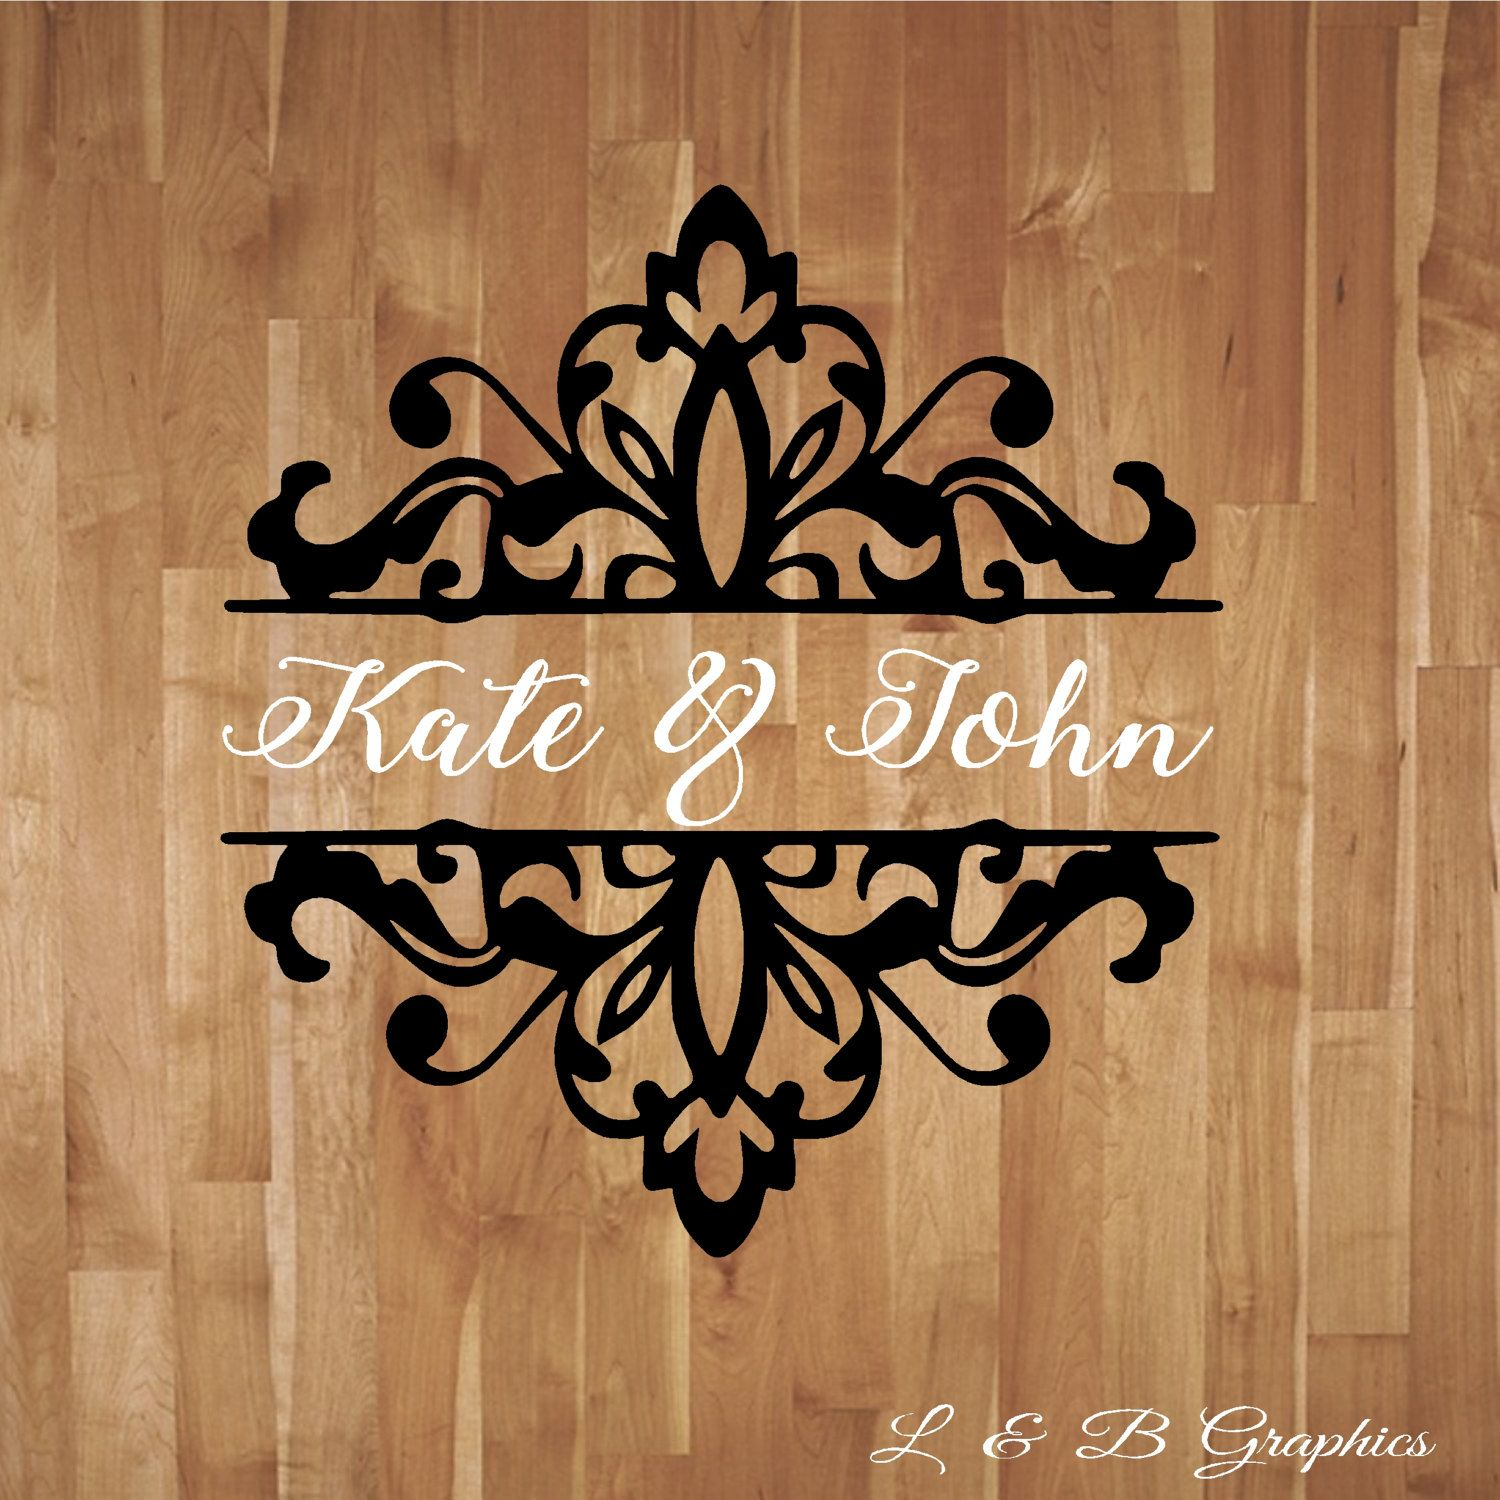 Wedding Damask Personalized With Names Dance Floor Decal Reception - Custom vinyl wall decals dance